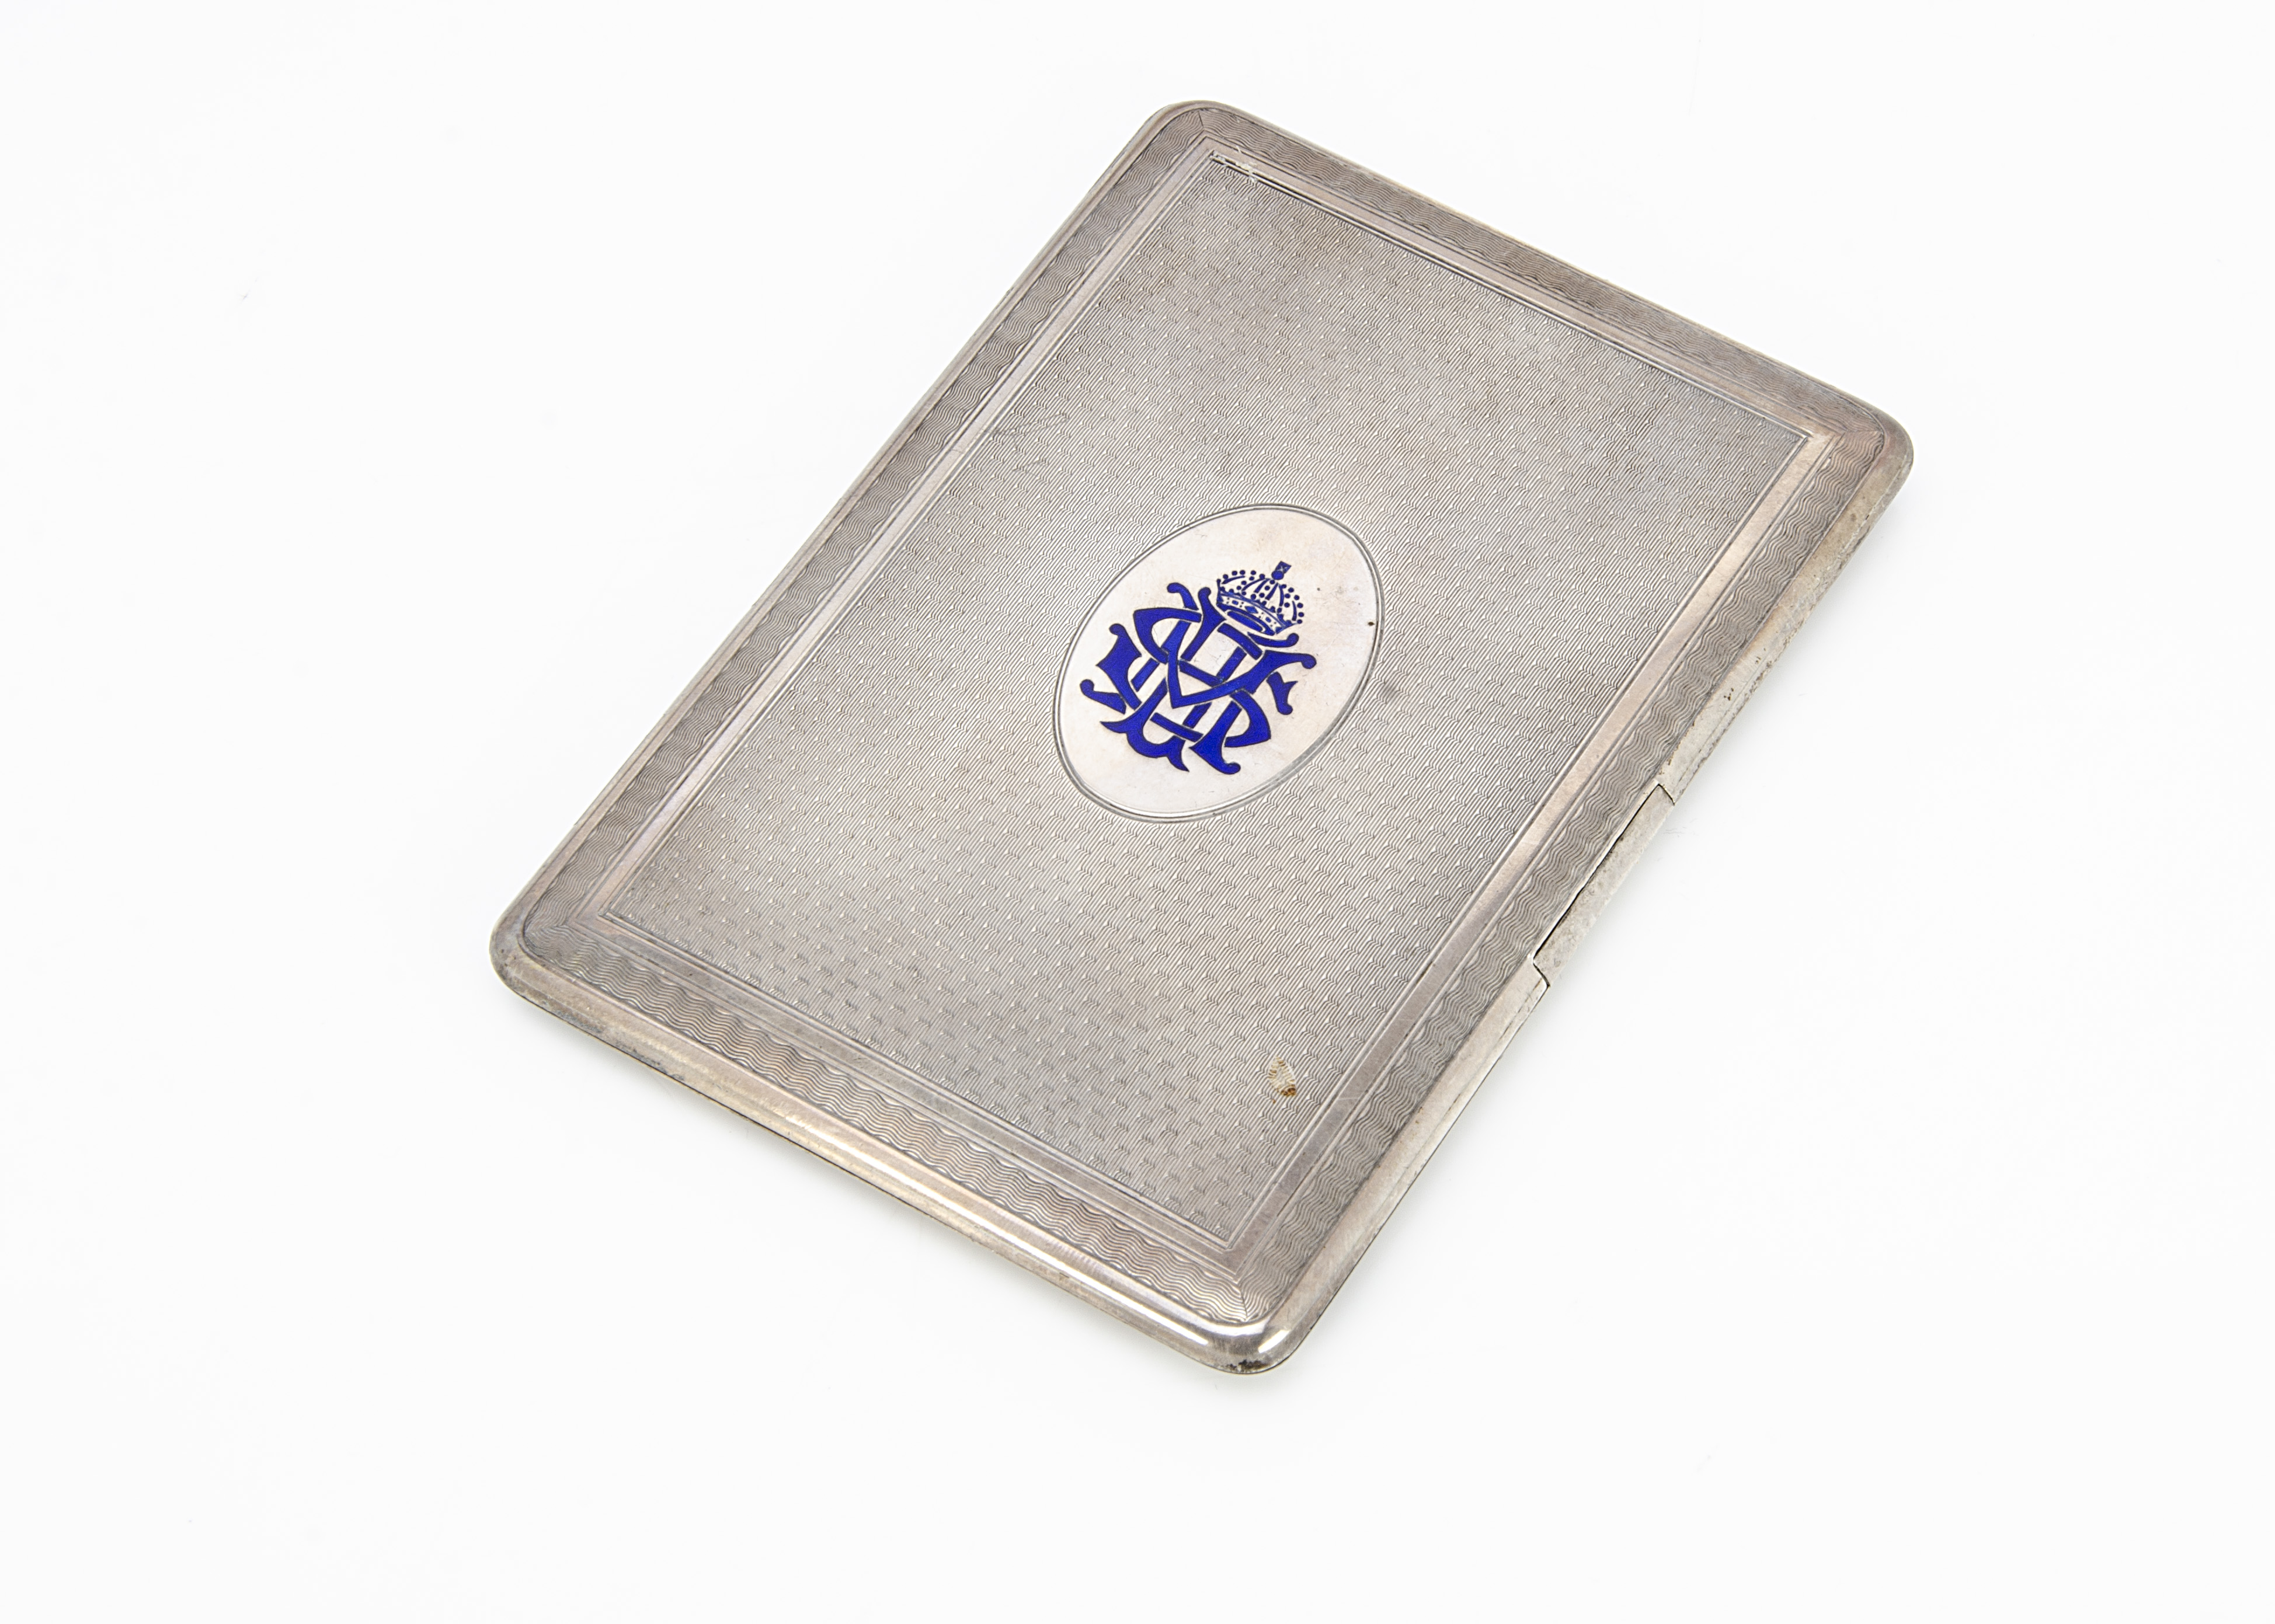 An Art Deco silver cigarette case by WFW, engine turned having blue enamel monogram and coronet, 5.7